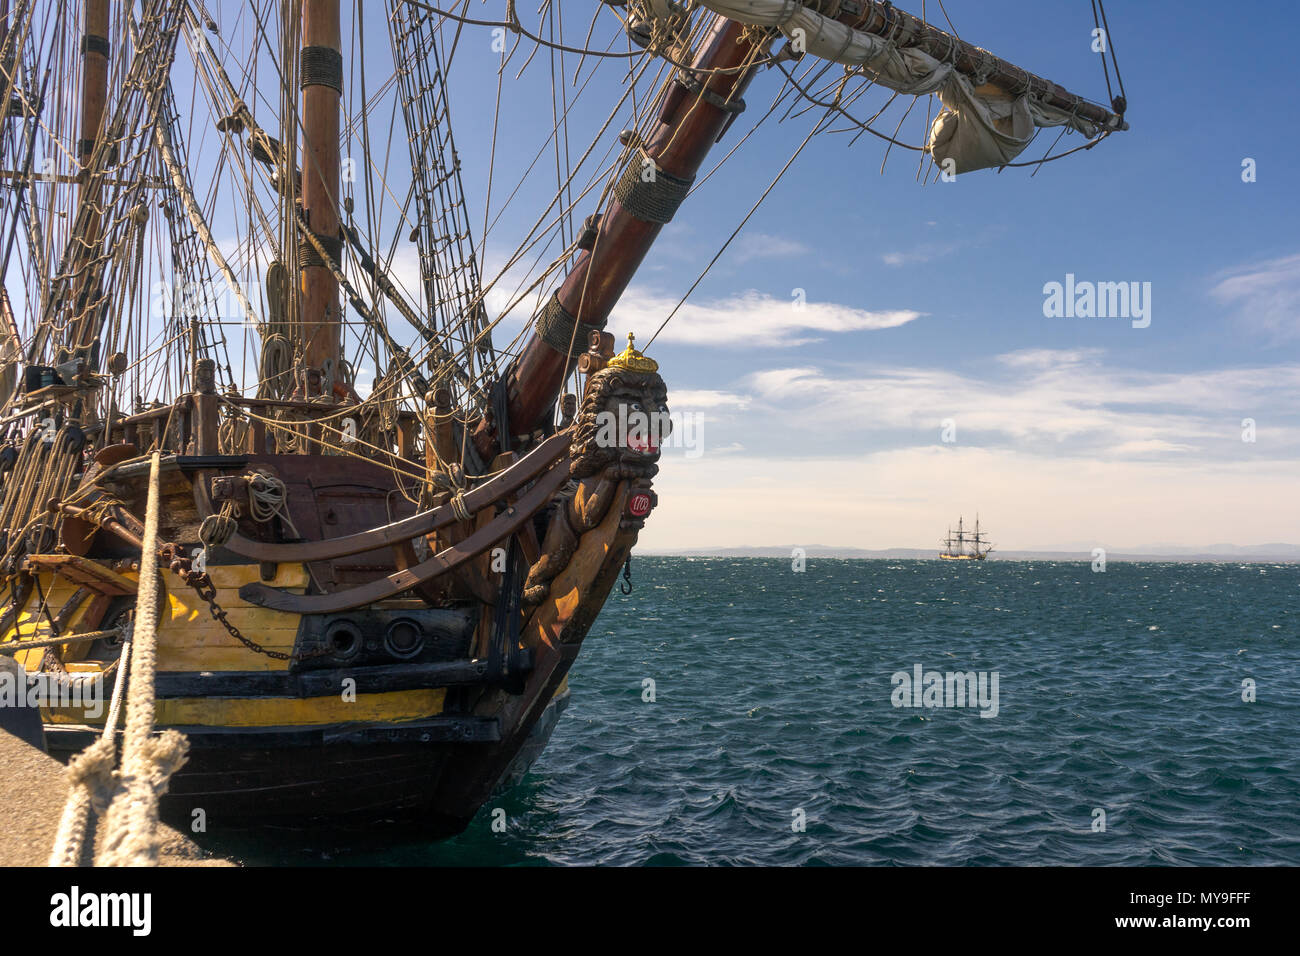 Old sailboat from 1703 anchored at shore with another ship waiting in the background - Stock Image